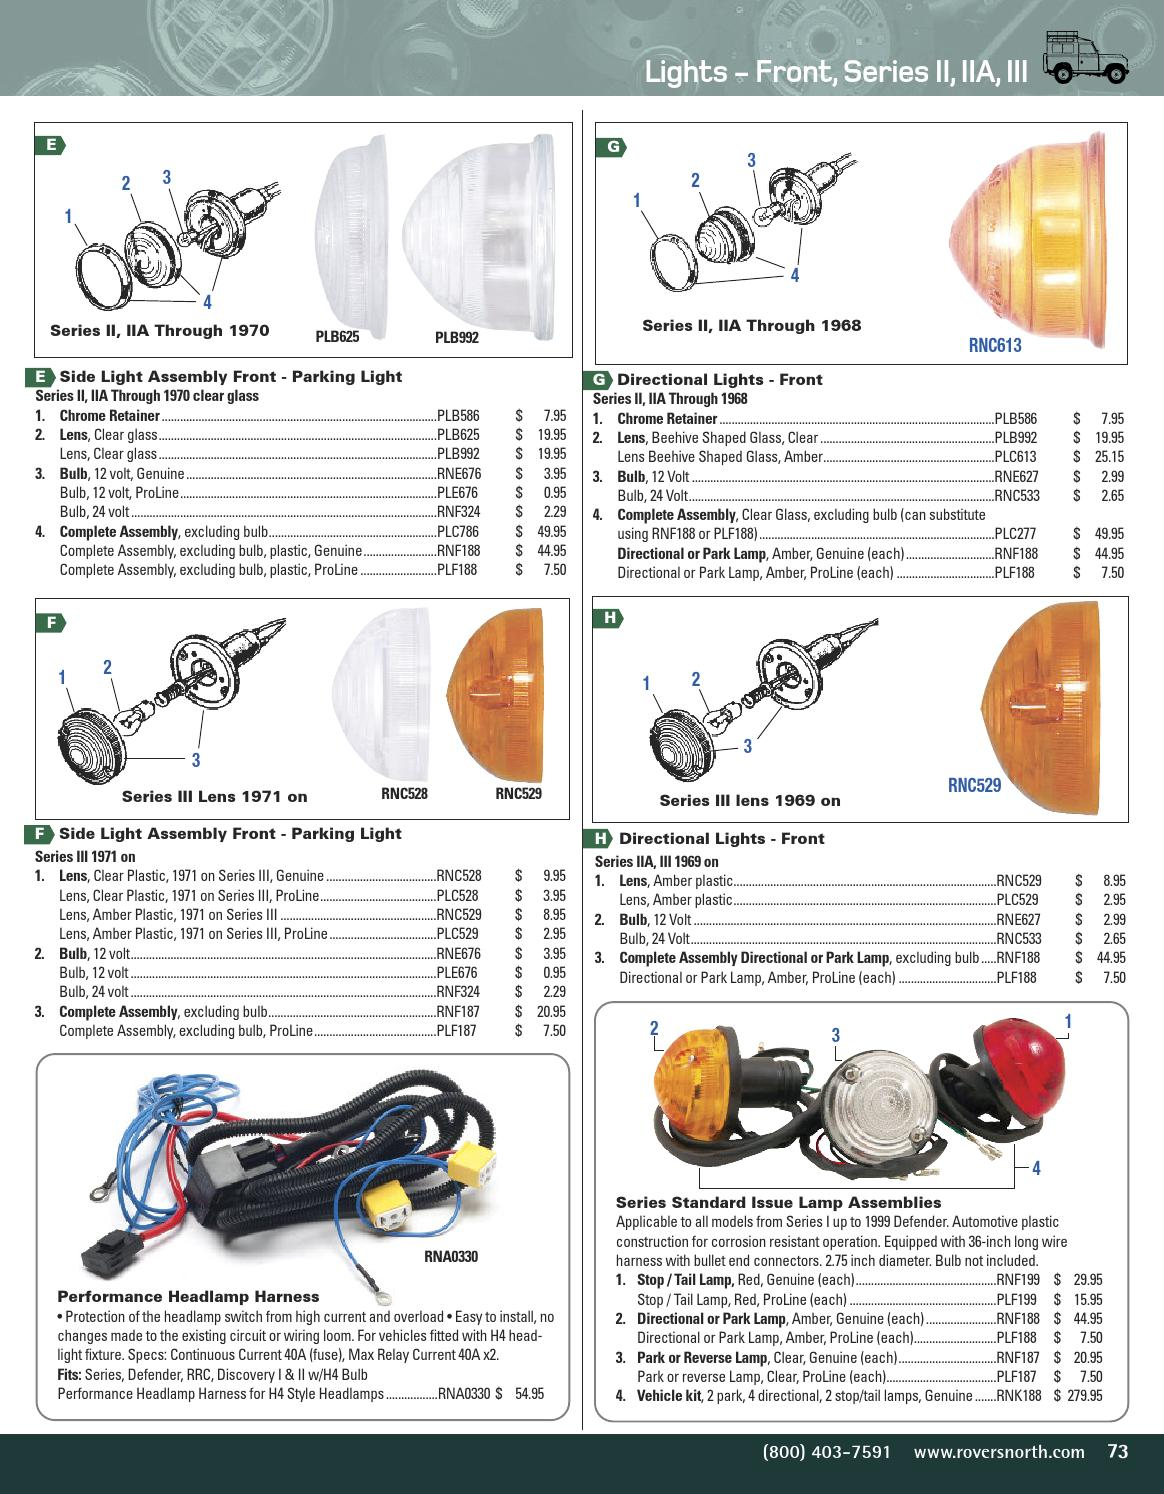 Rovers Magazine Summer 2015 By North Issuu Wiring 12 Volt Lights In Series